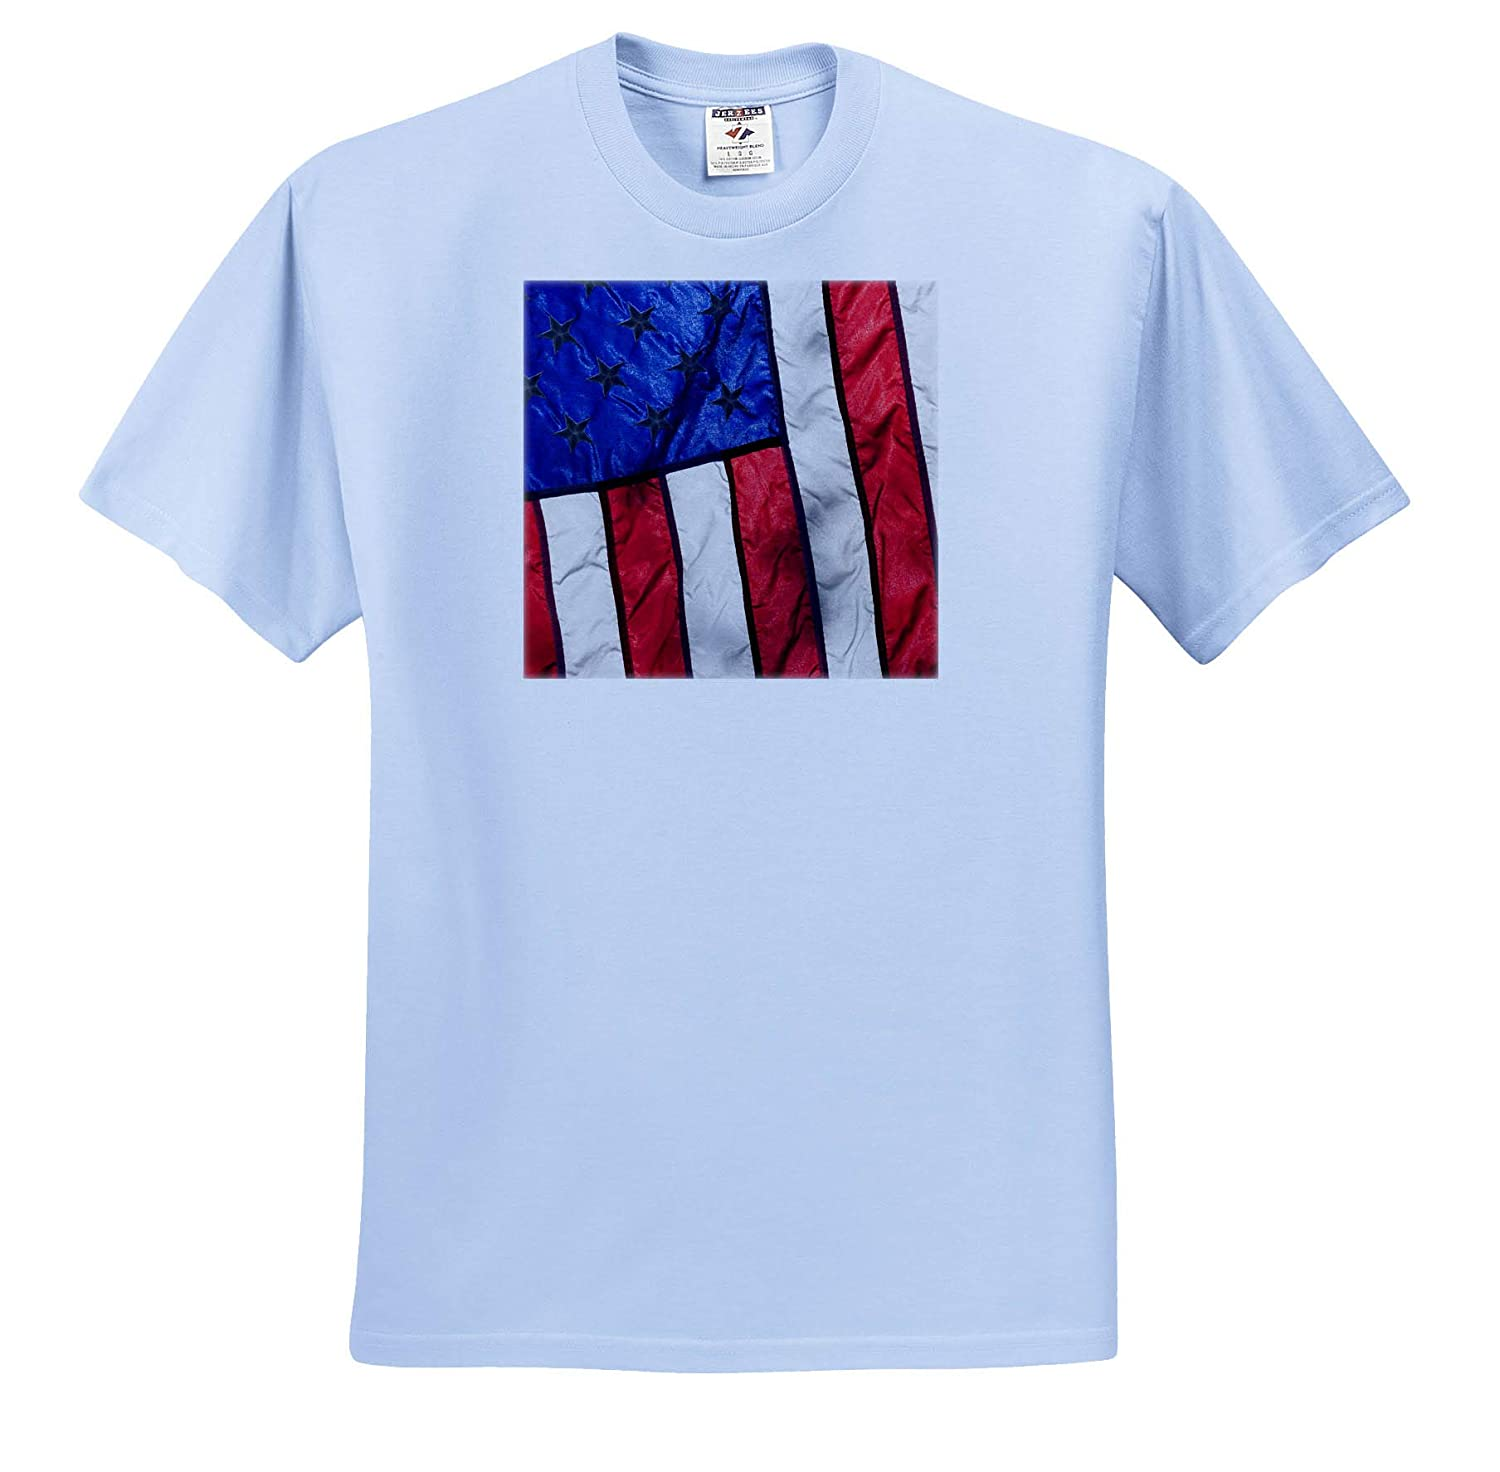 ts/_313708 - Adult T-Shirt XL America 3dRose Danita Delimont Sunlight Shines Through an American Flag